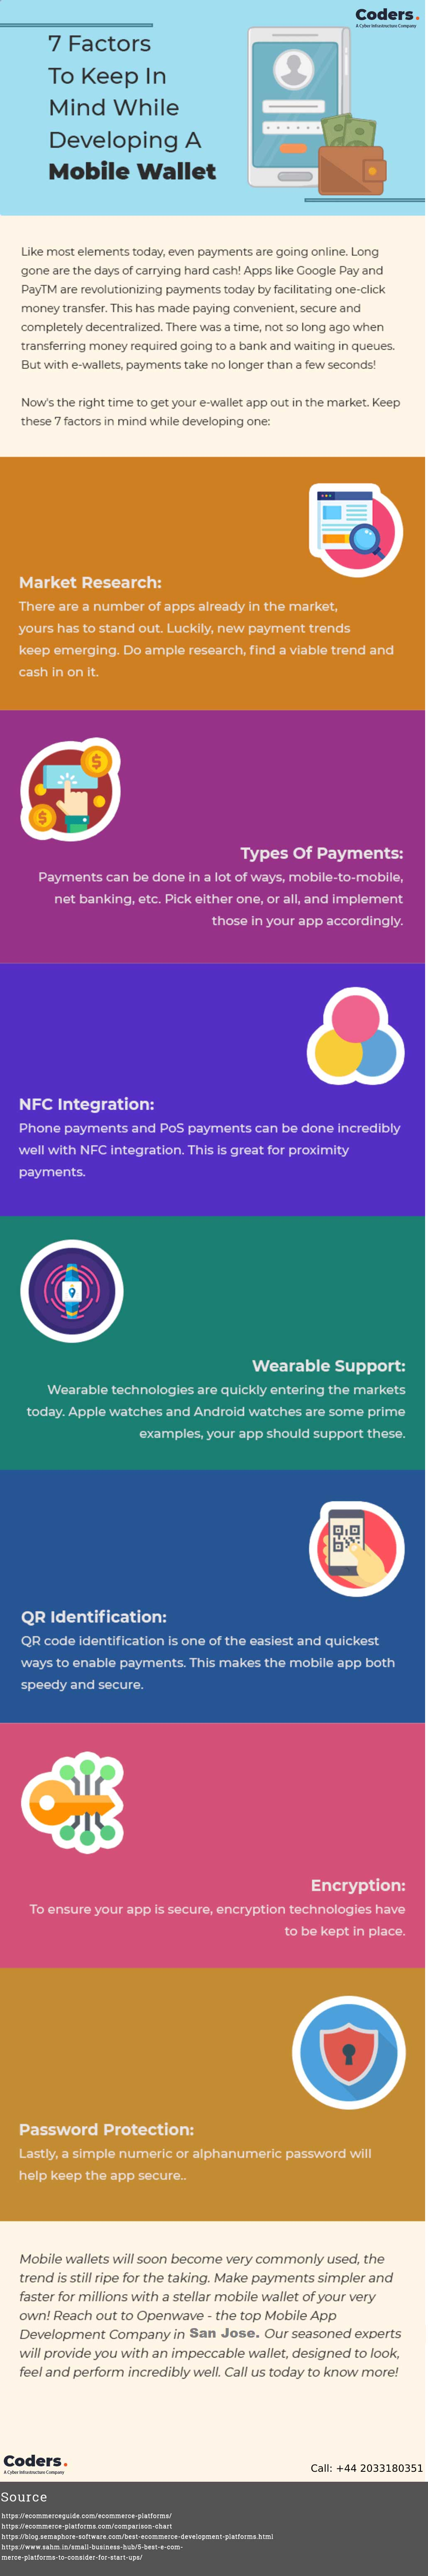 7-Factors-To-Keep-In-Mind-While-A-Developing-Mobile-Wallet